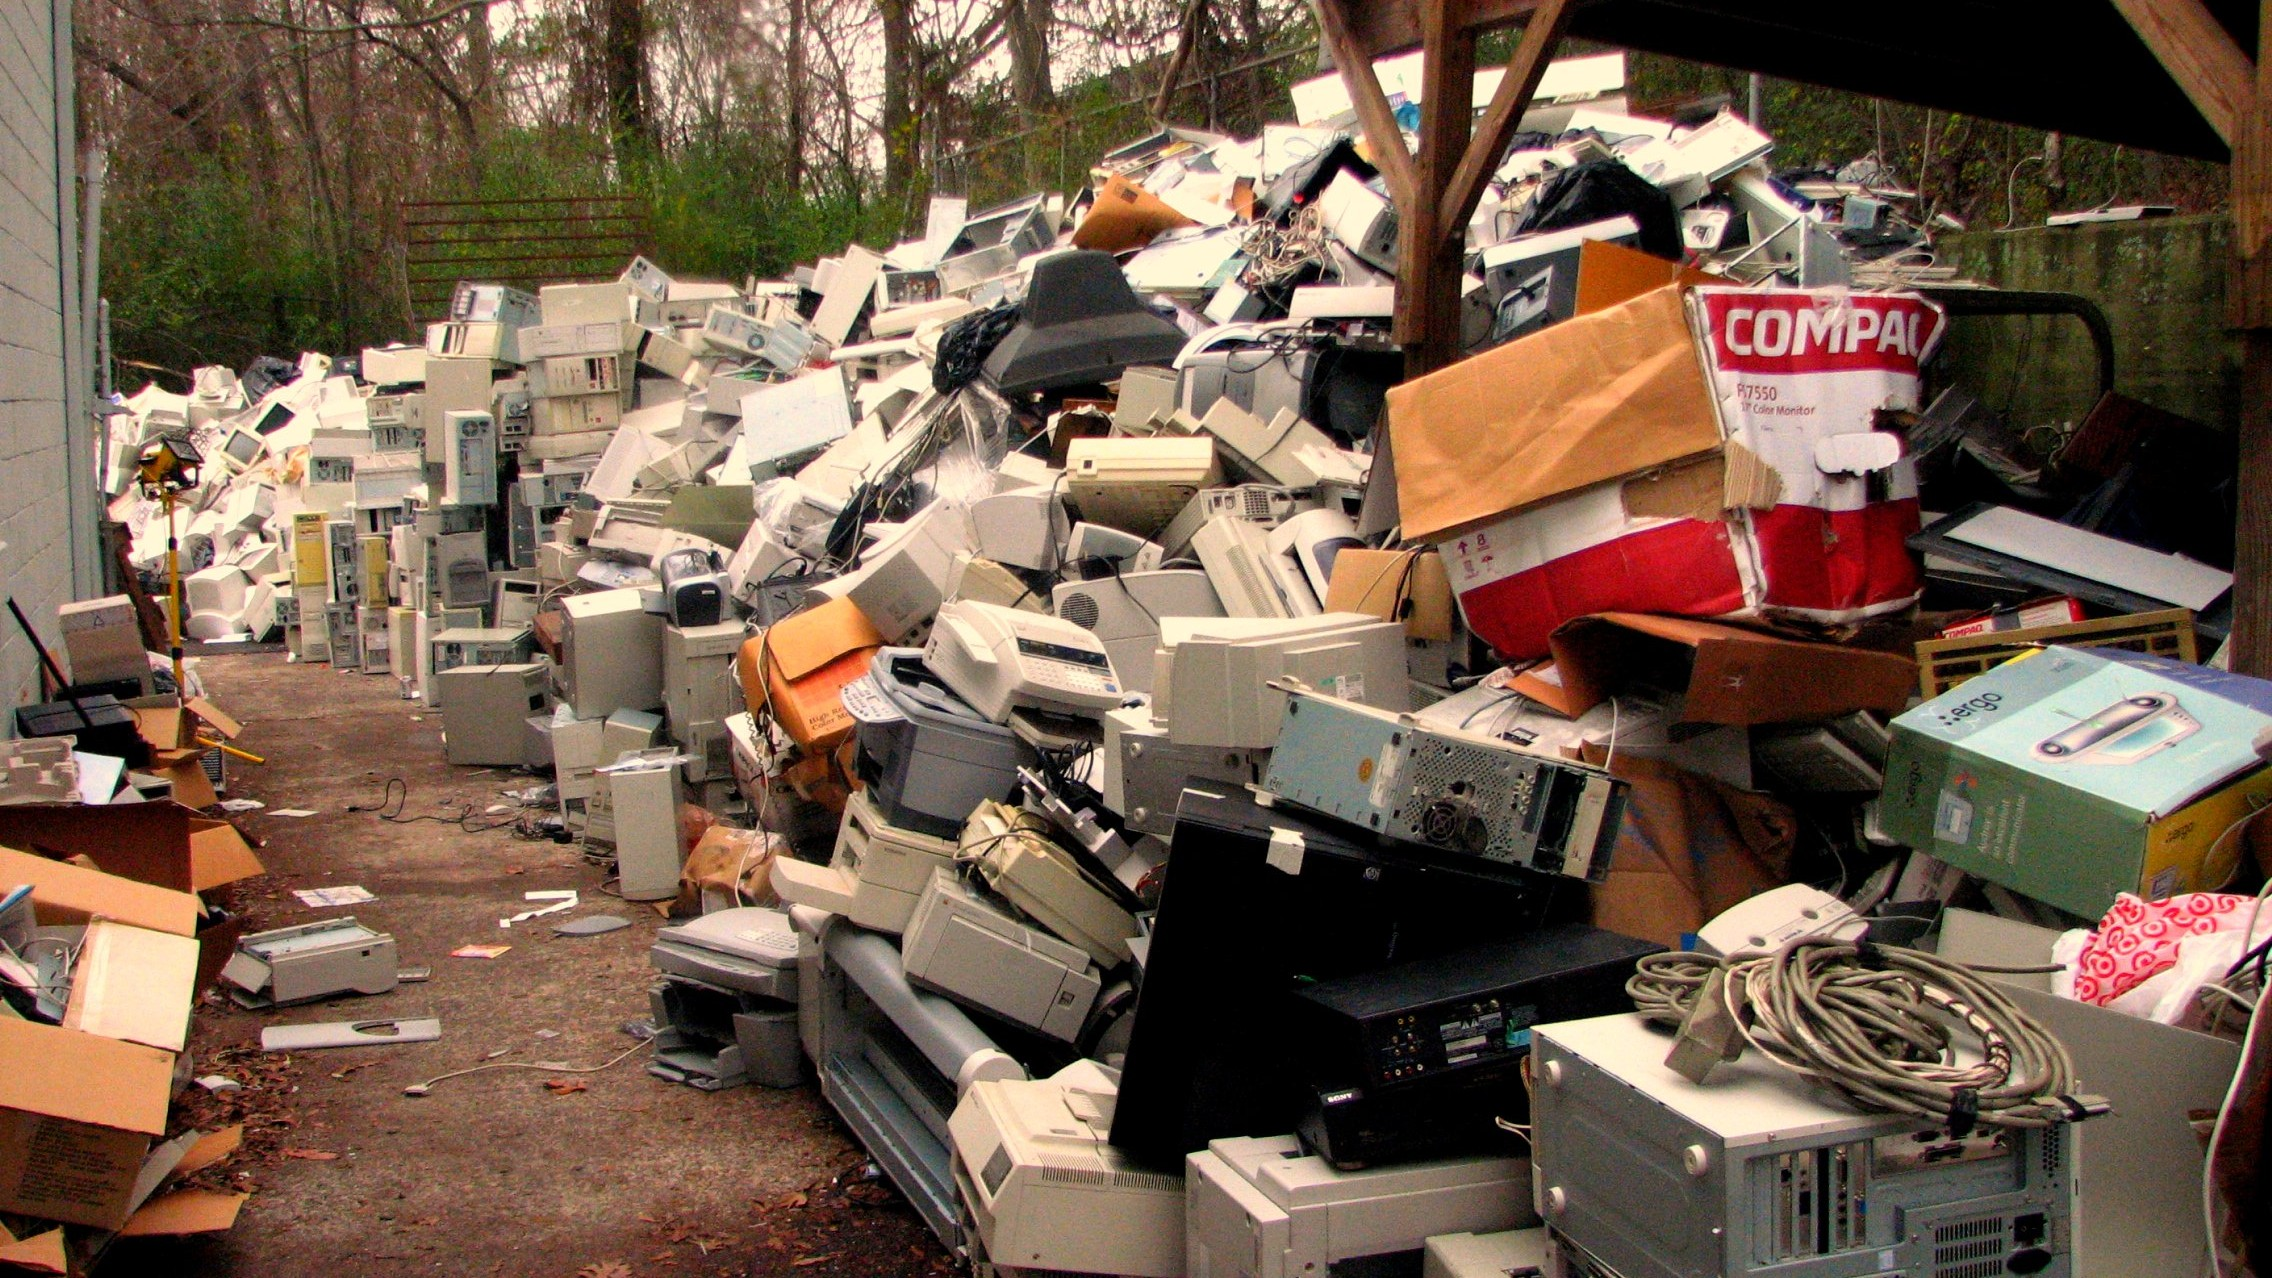 The World Produced a Staggering 41.8 Million Tonnes of E-Waste in 2014